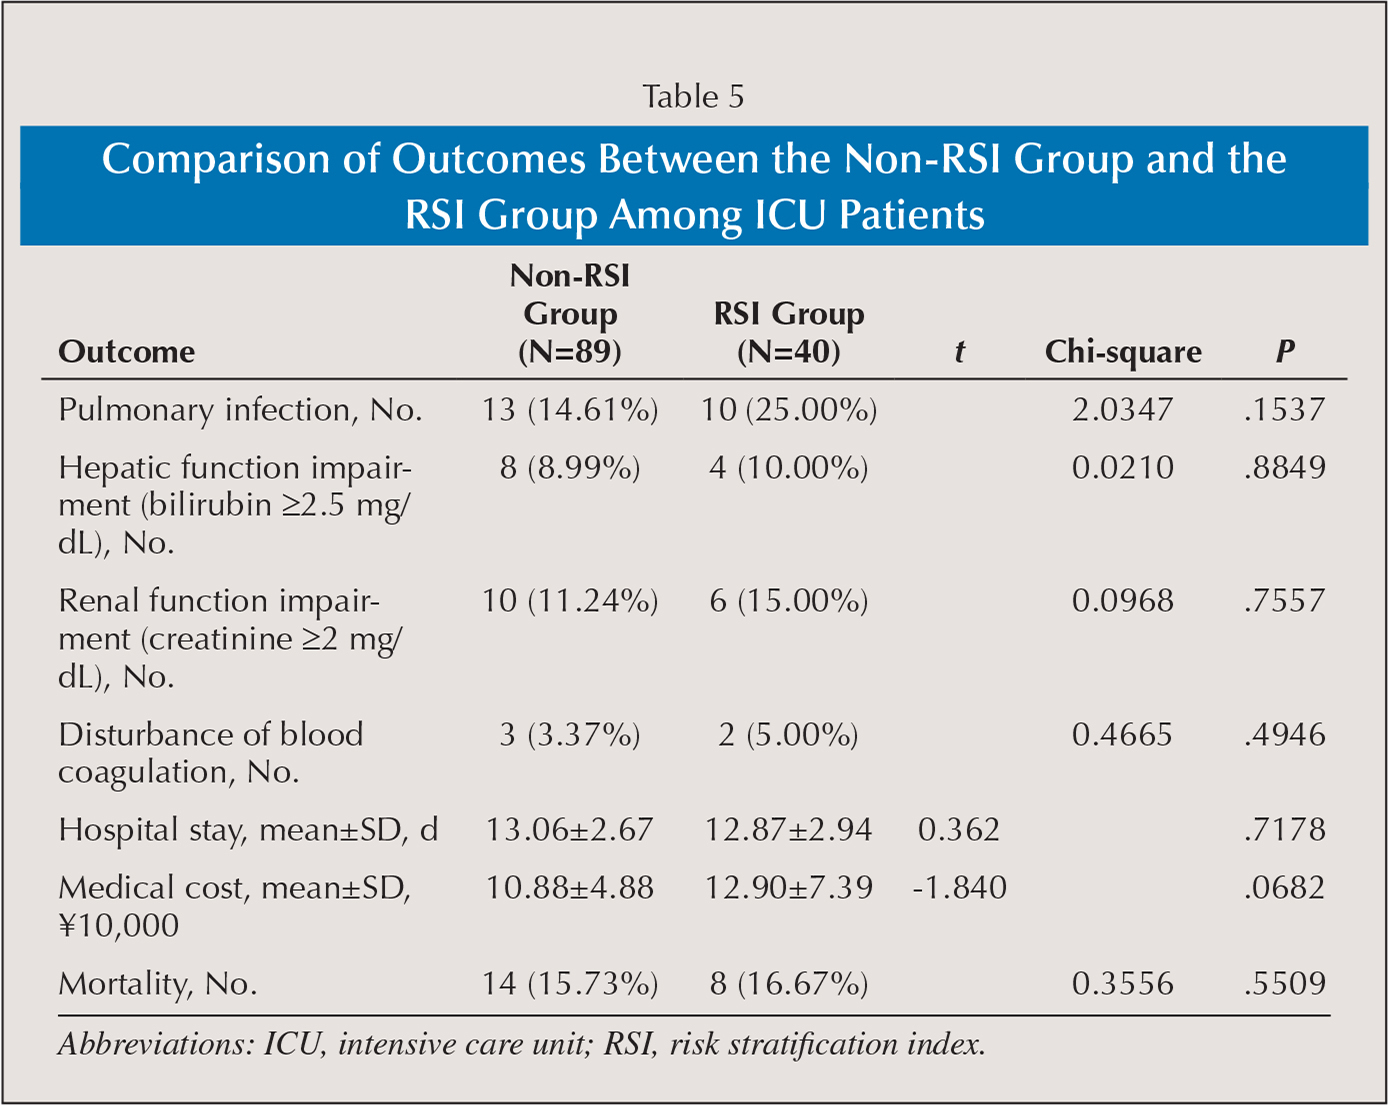 Comparison of Outcomes Between the Non-RSI Group and the RSI Group Among ICU Patients